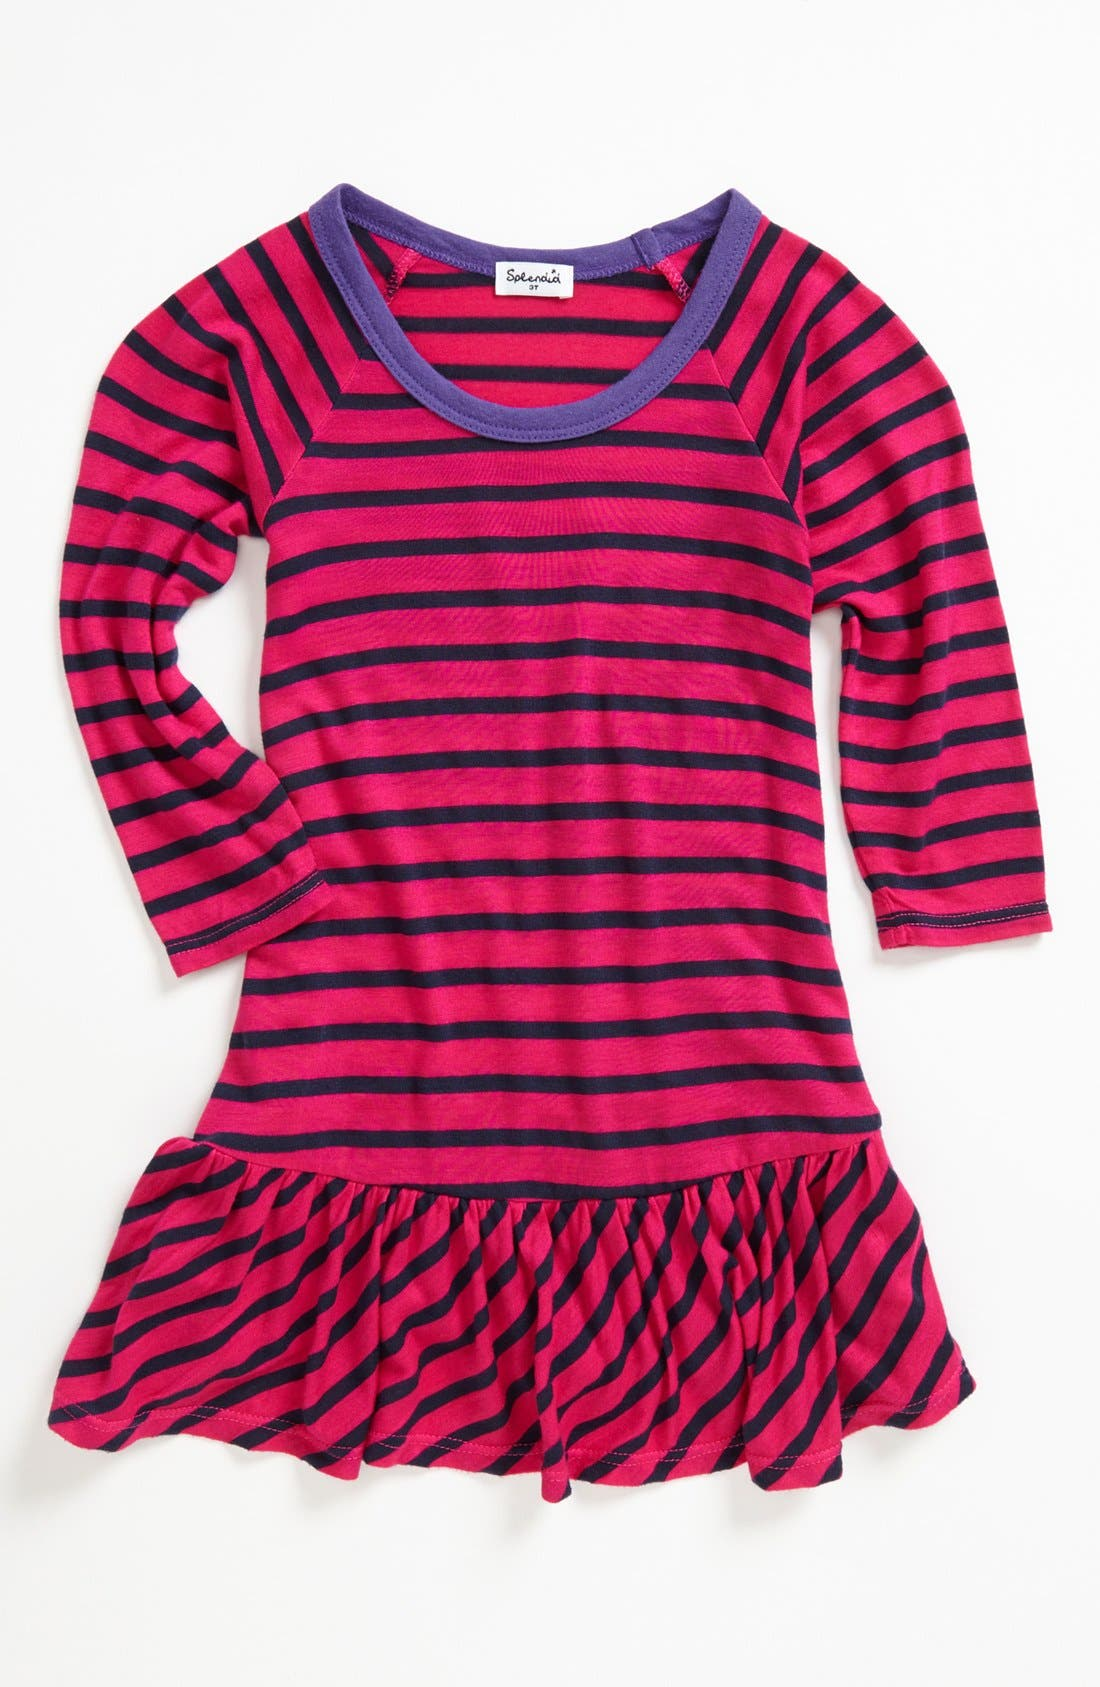 Alternate Image 1 Selected - Splendid Drop Waist Dress (Toddler Girls) (Online Only)